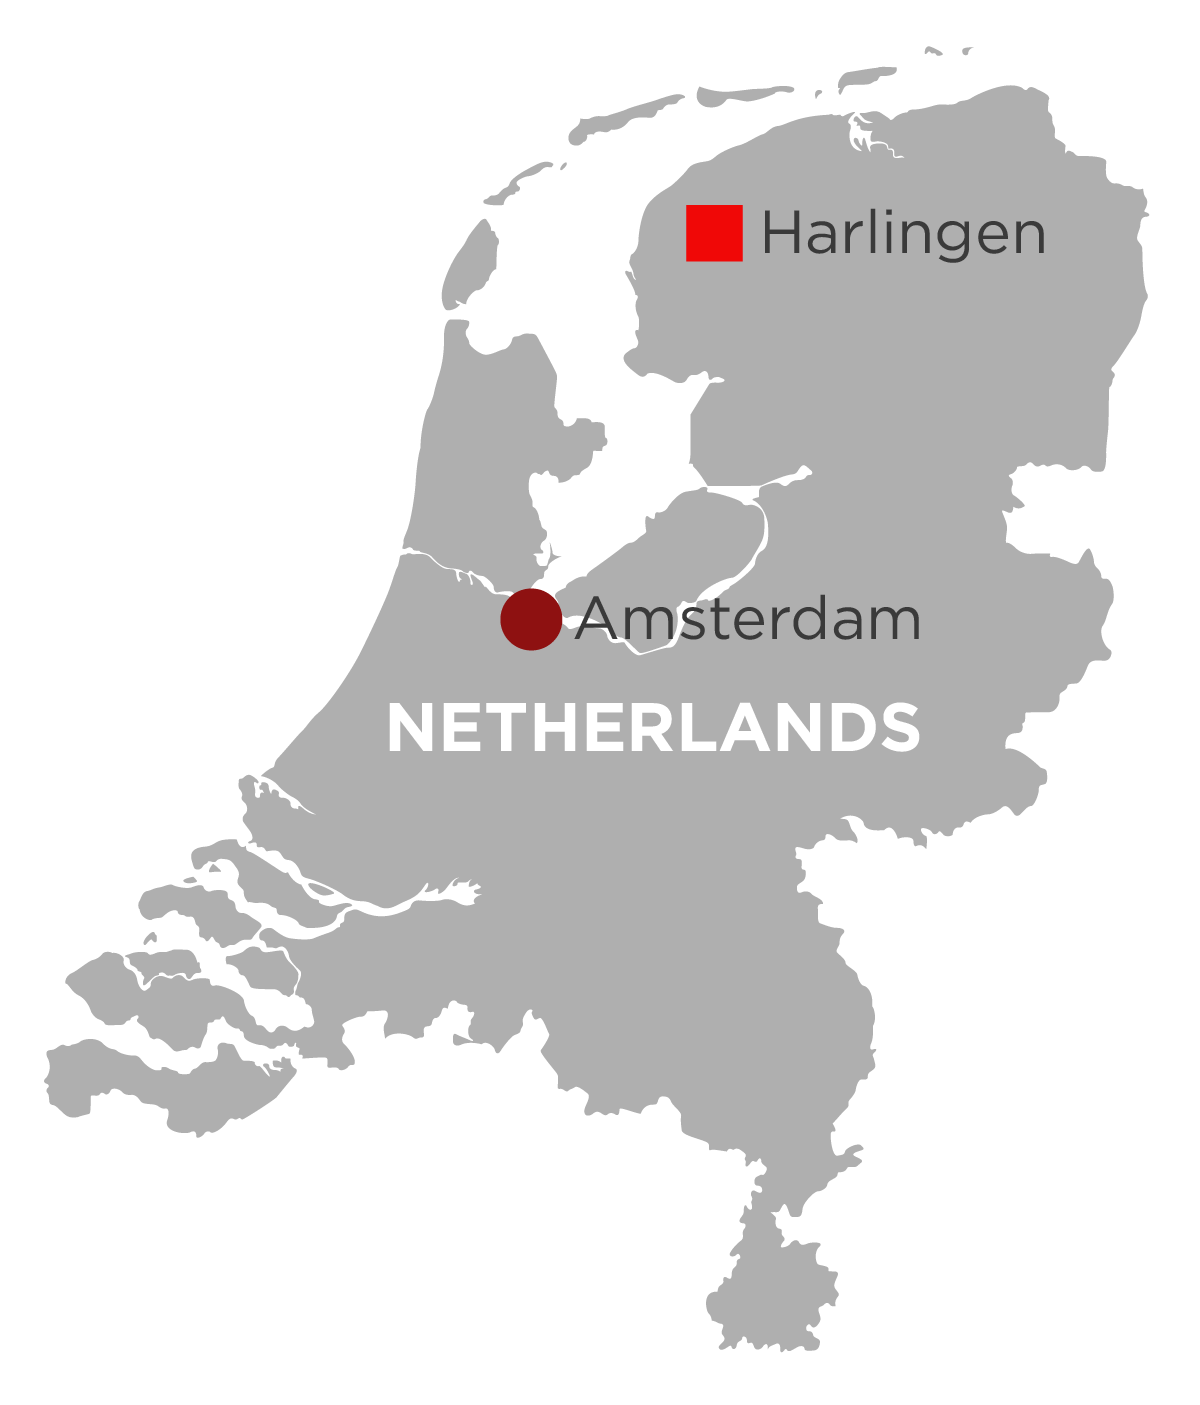 Picture of: Netherlands Vermilion Energy